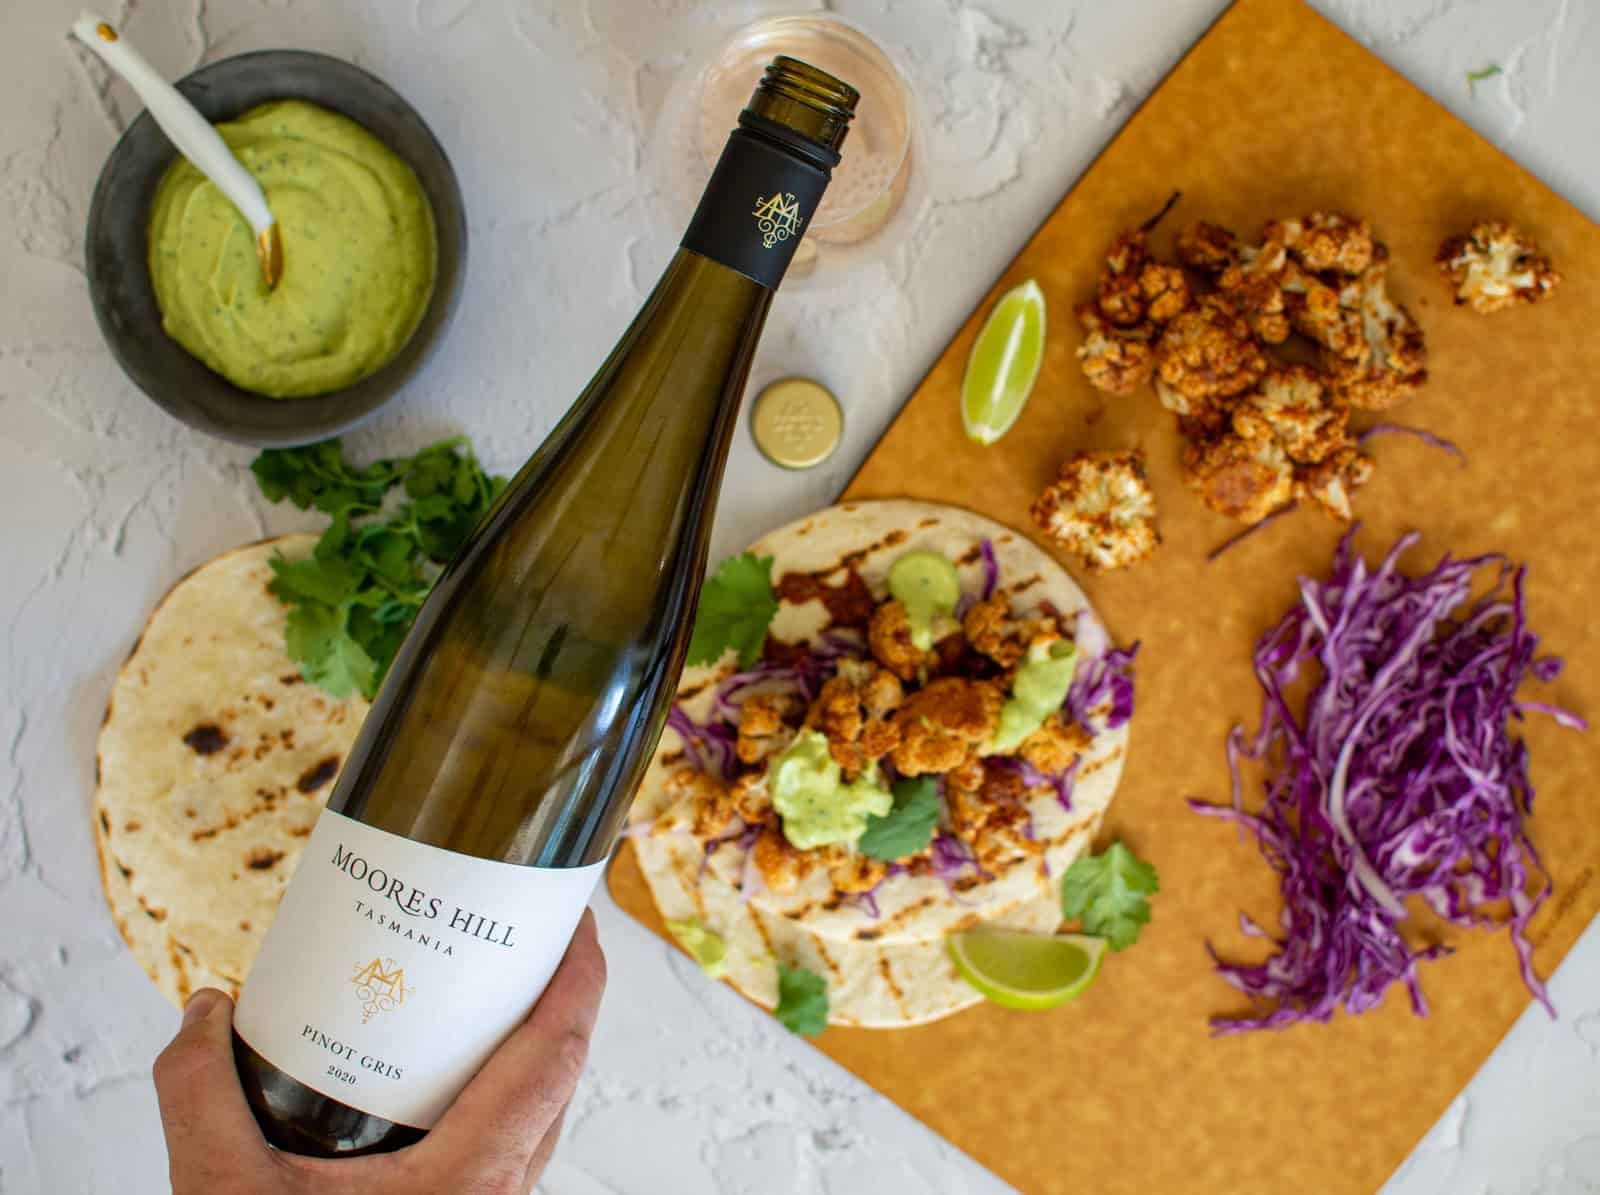 moores hill pinot gris being poured from above - cauliflower tacos beneath the bottle